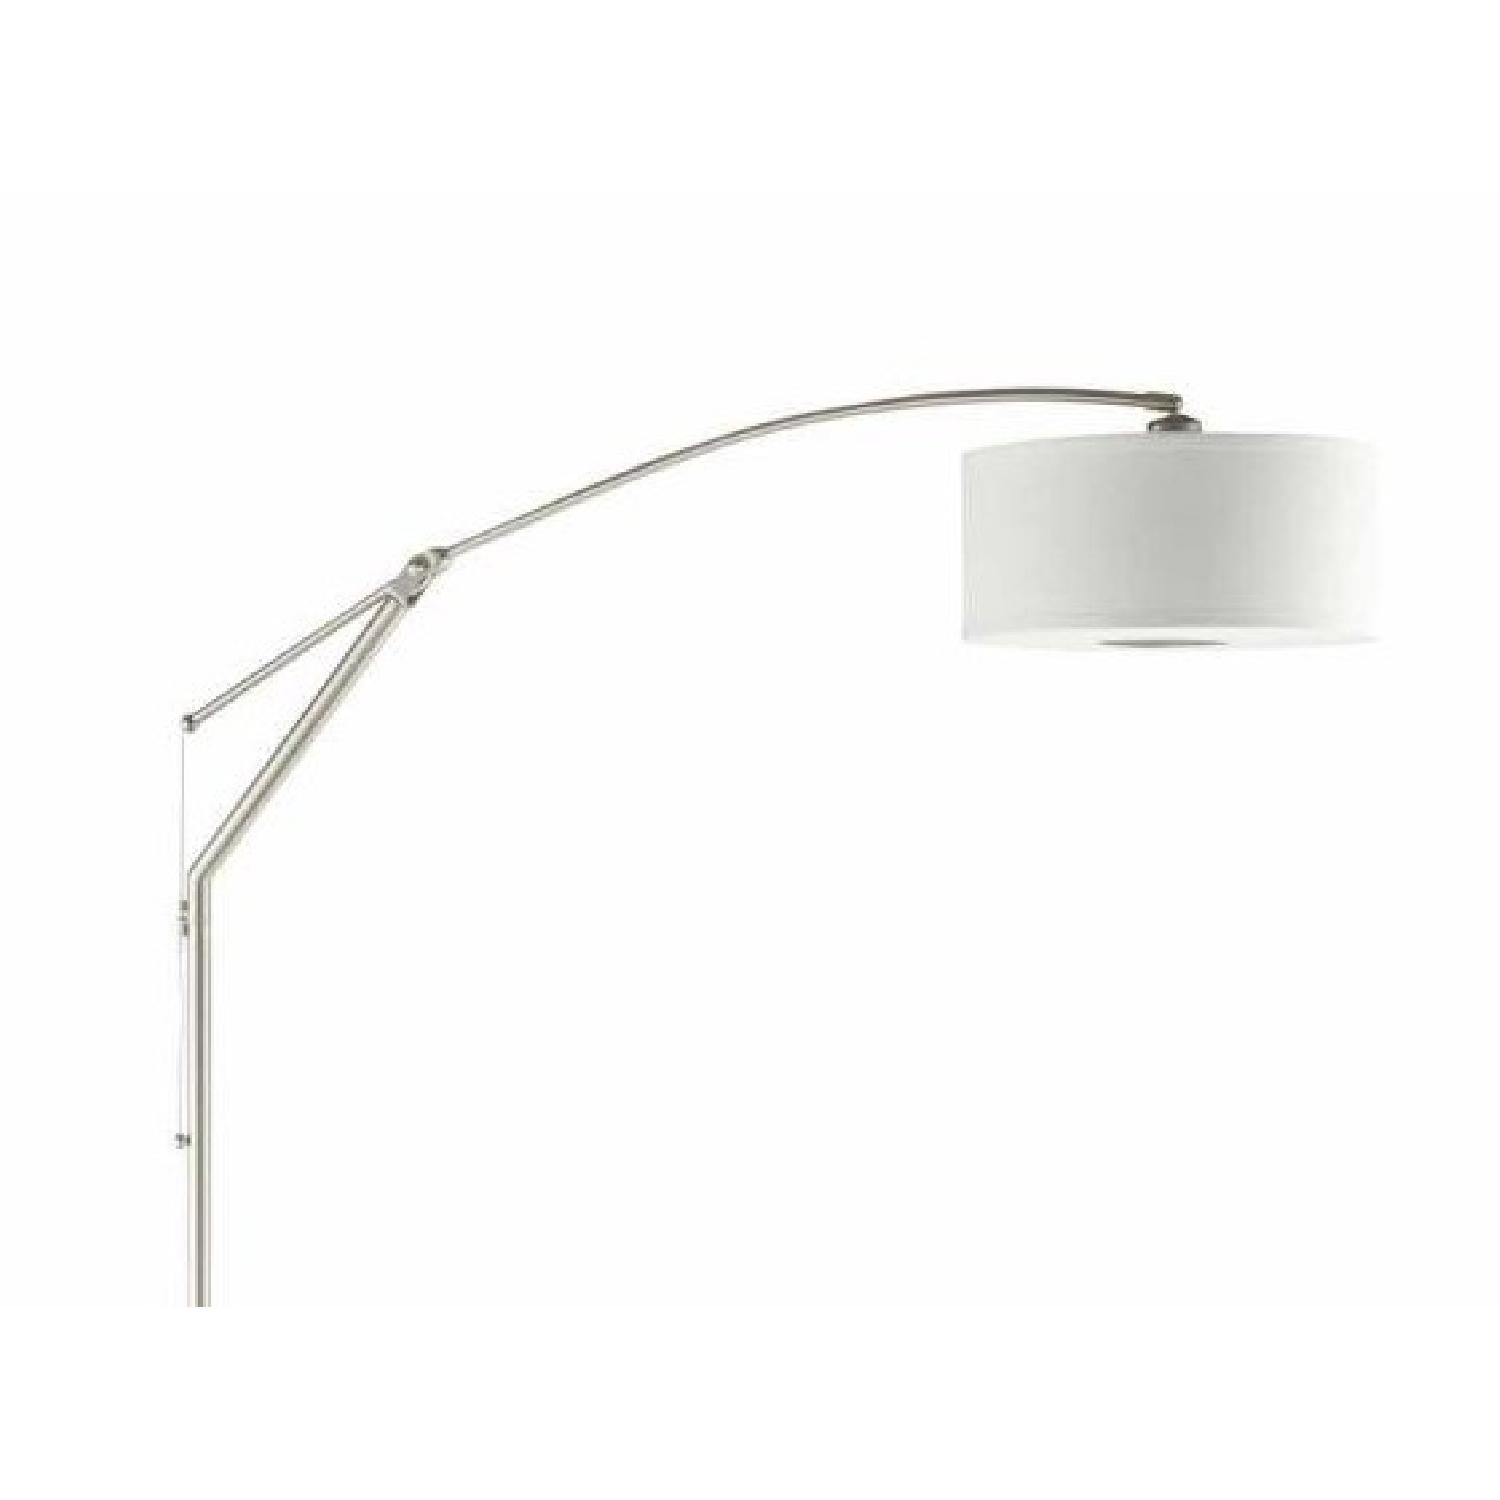 Floor Lamp w/ Arched Back & Round White Pendent Shade - image-1